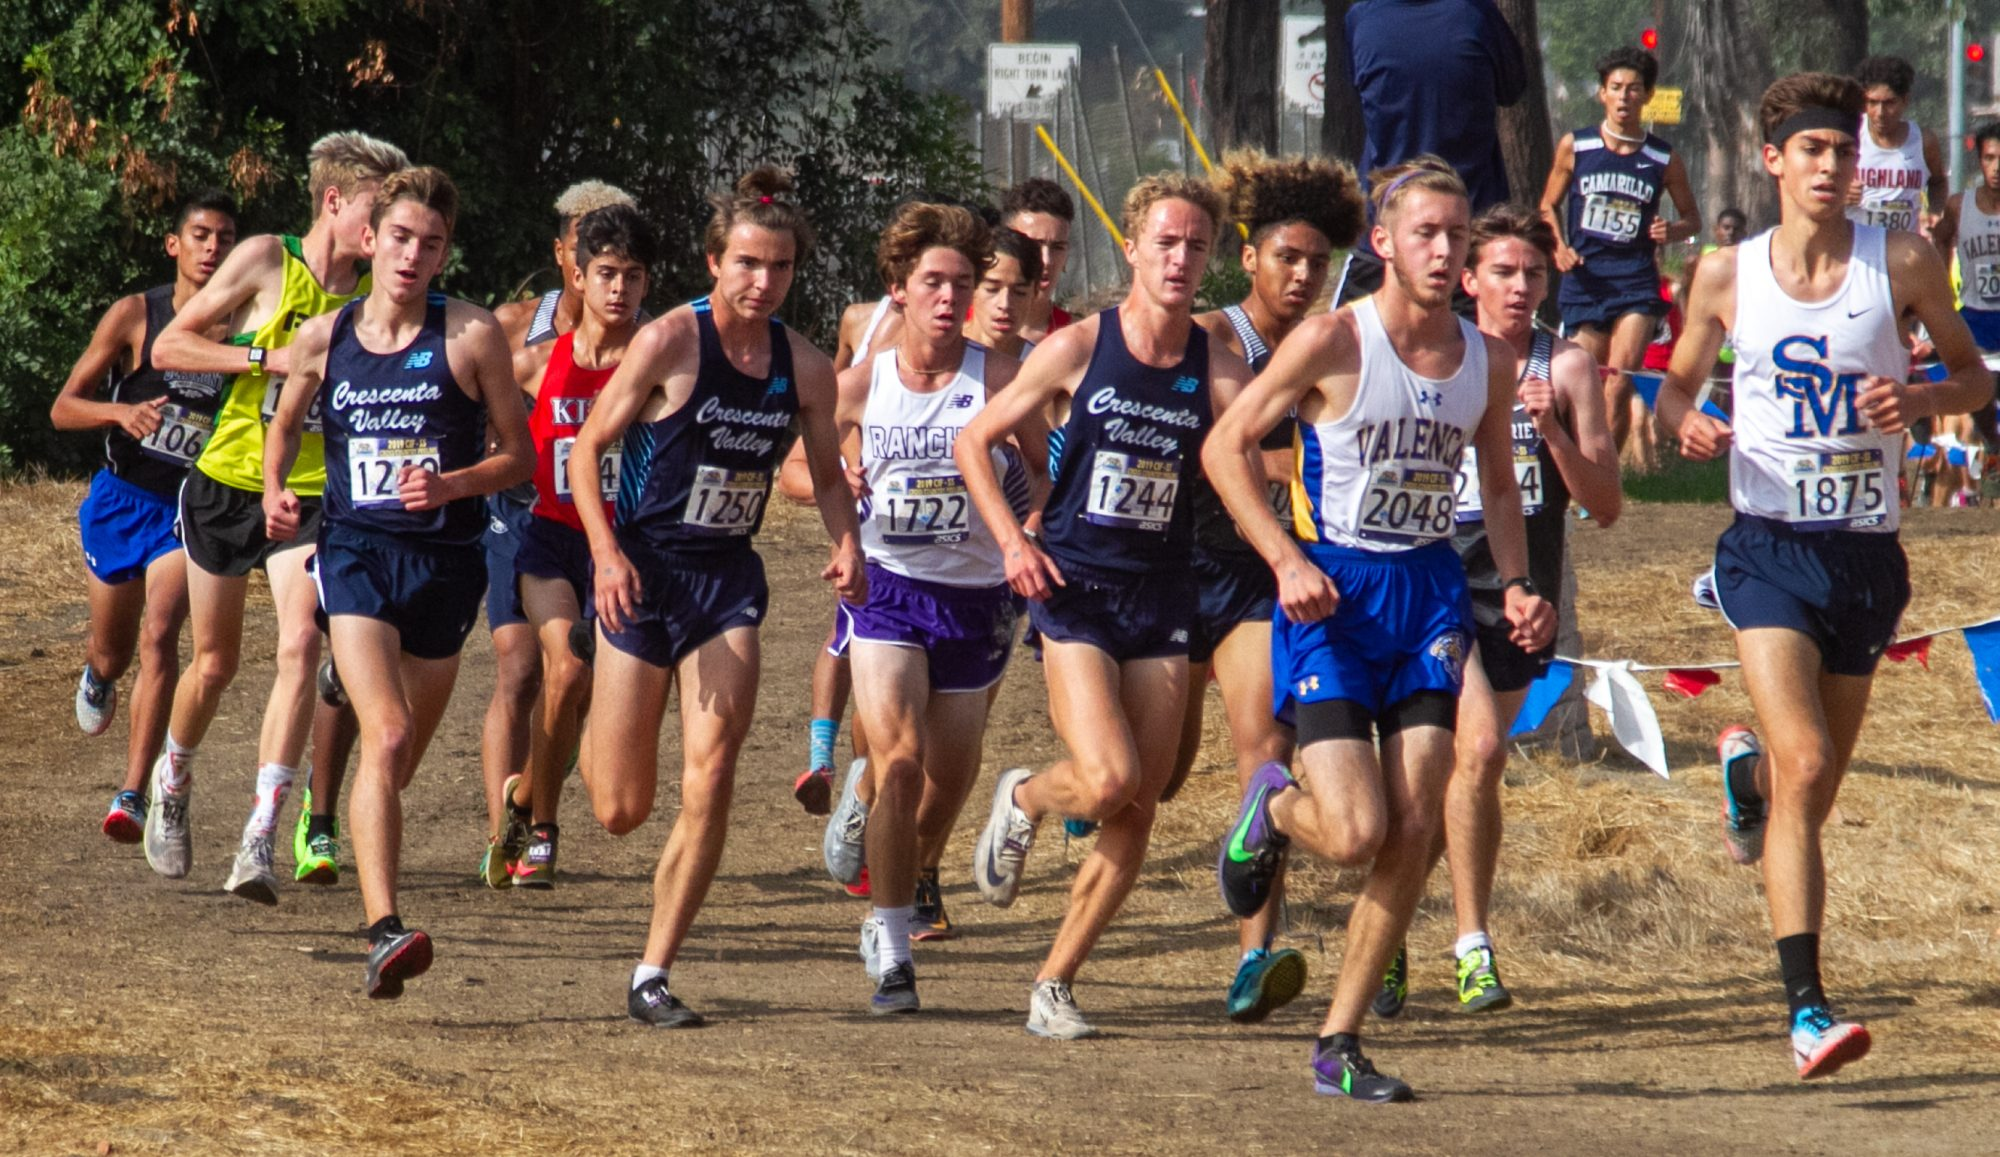 THE RIVERSIDE CITY CROSS COUNTRY COURSE